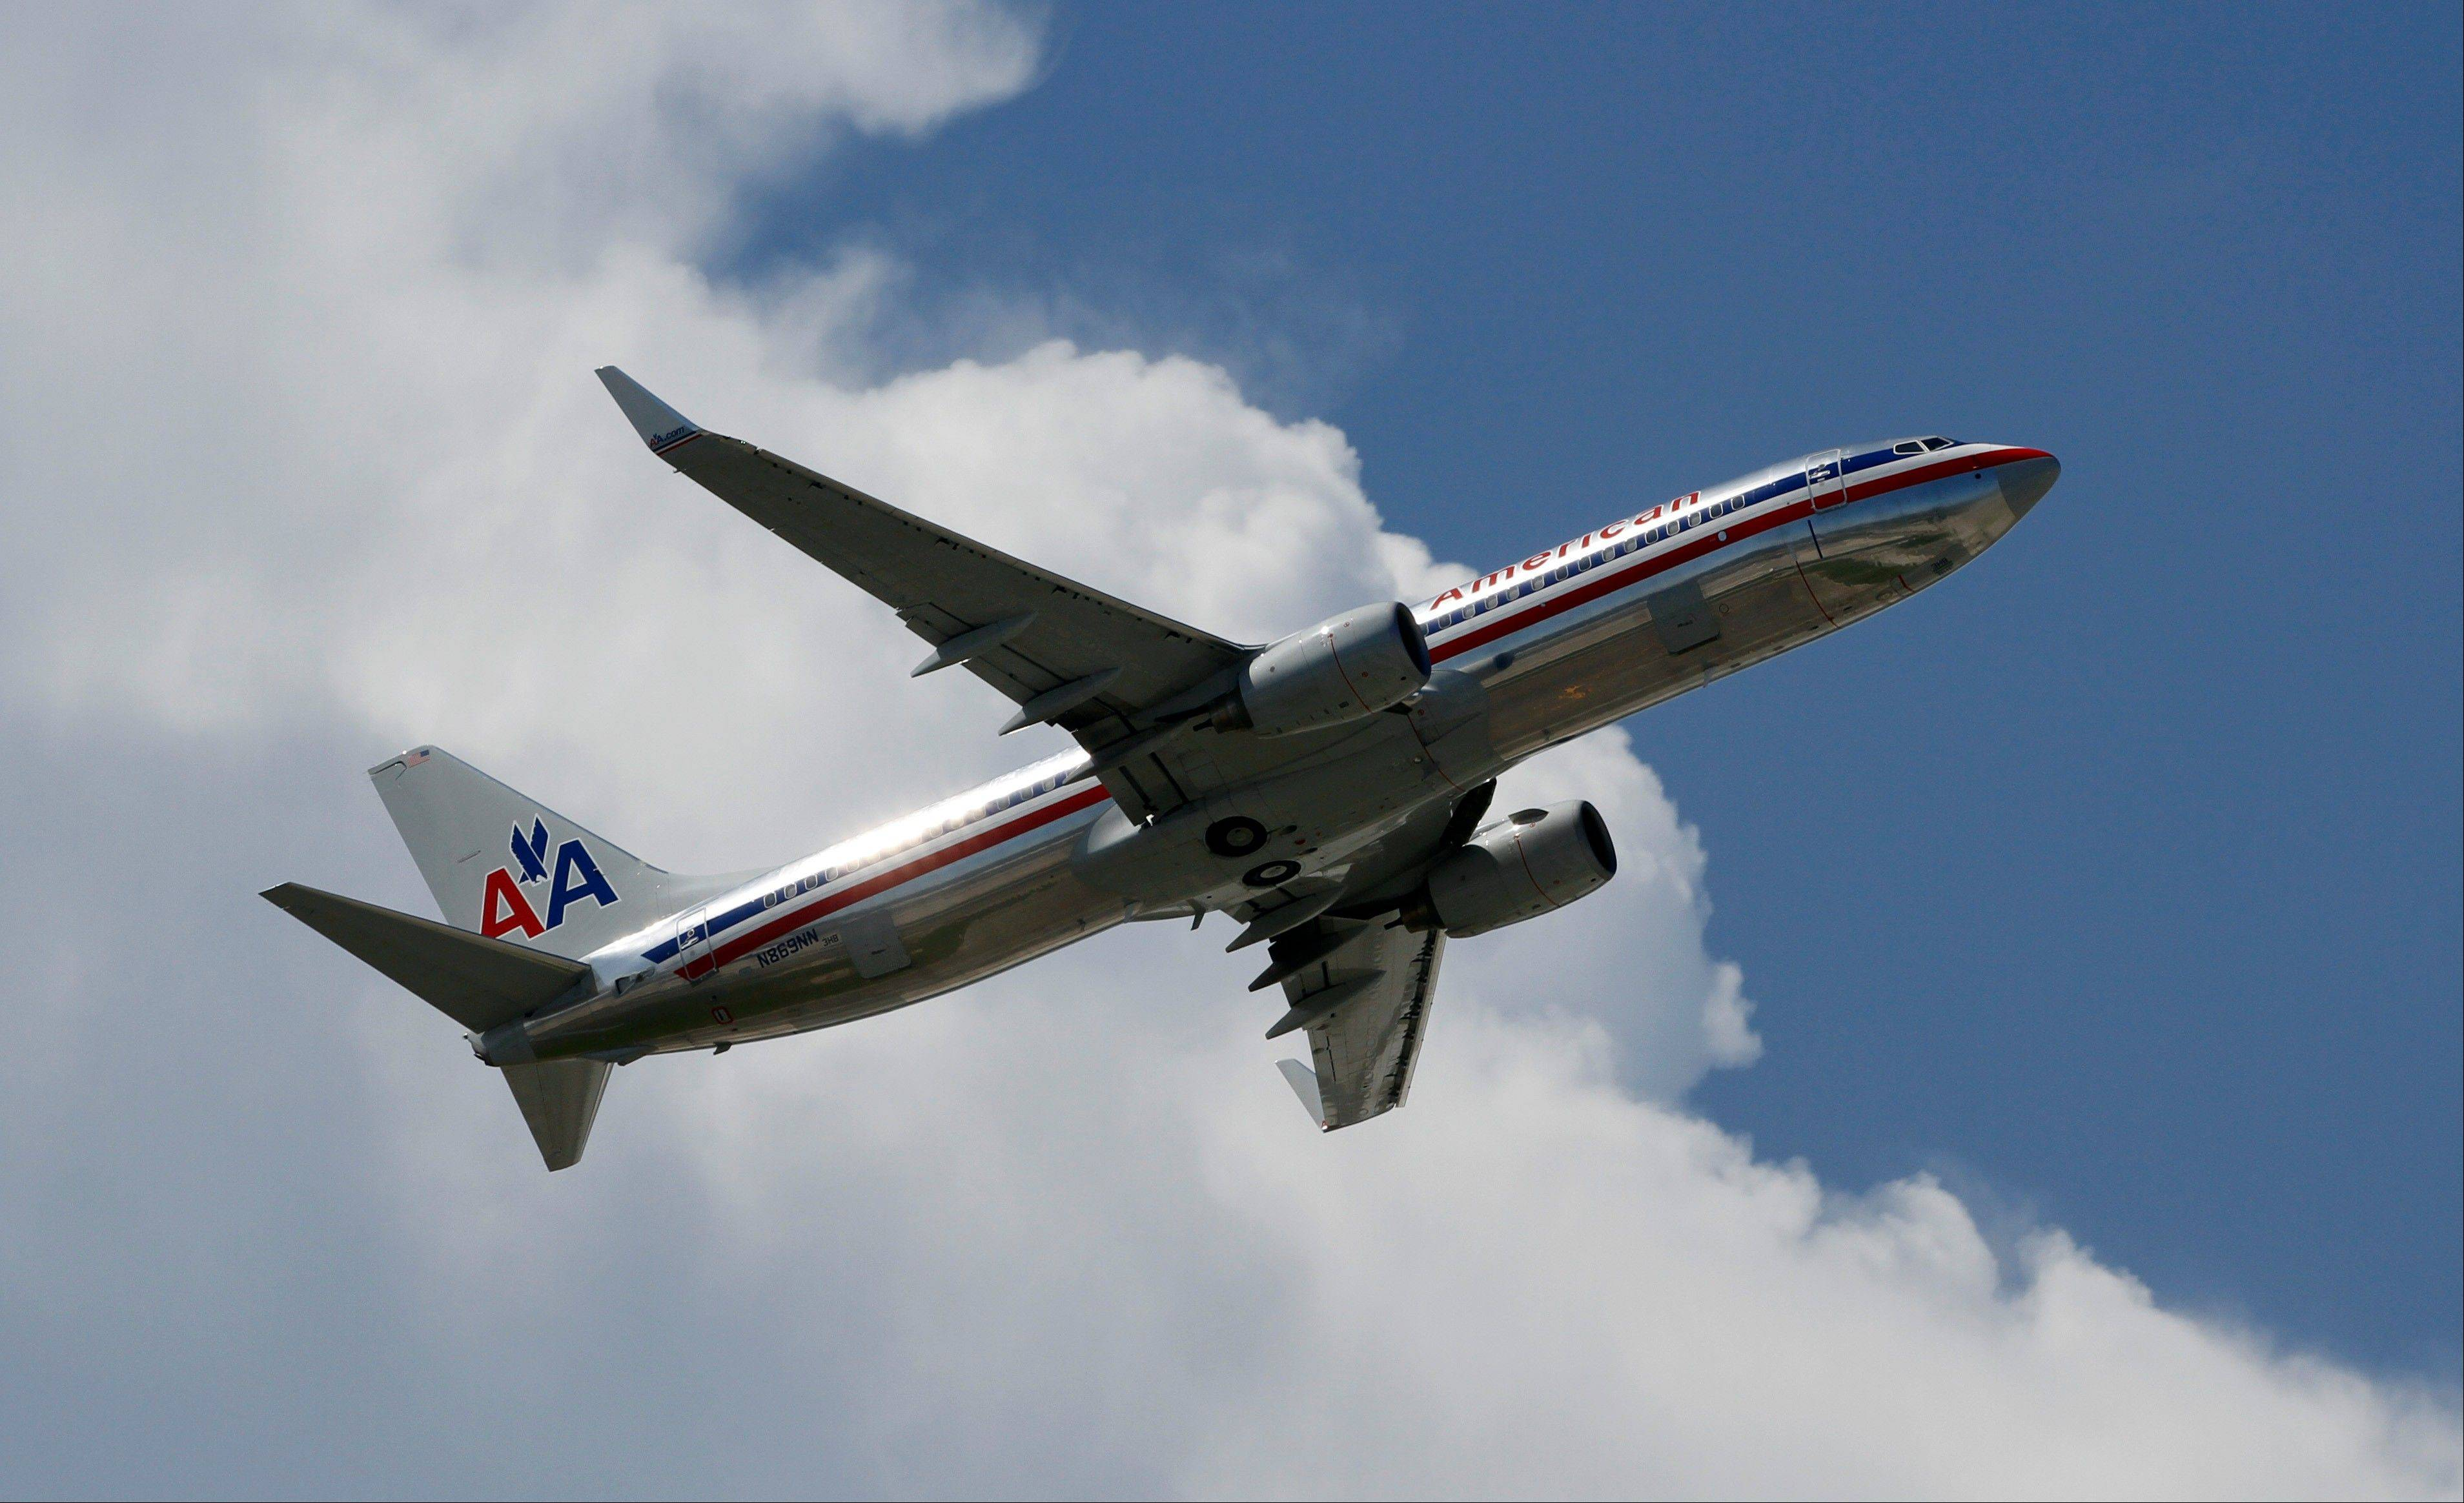 With American Airlines canceling dozens of flights every day, passengers with fall travel plans are confronting an inconvenient question: Should they avoid the nation's third-largest carrier because labor strife might cause delays and cancelations?